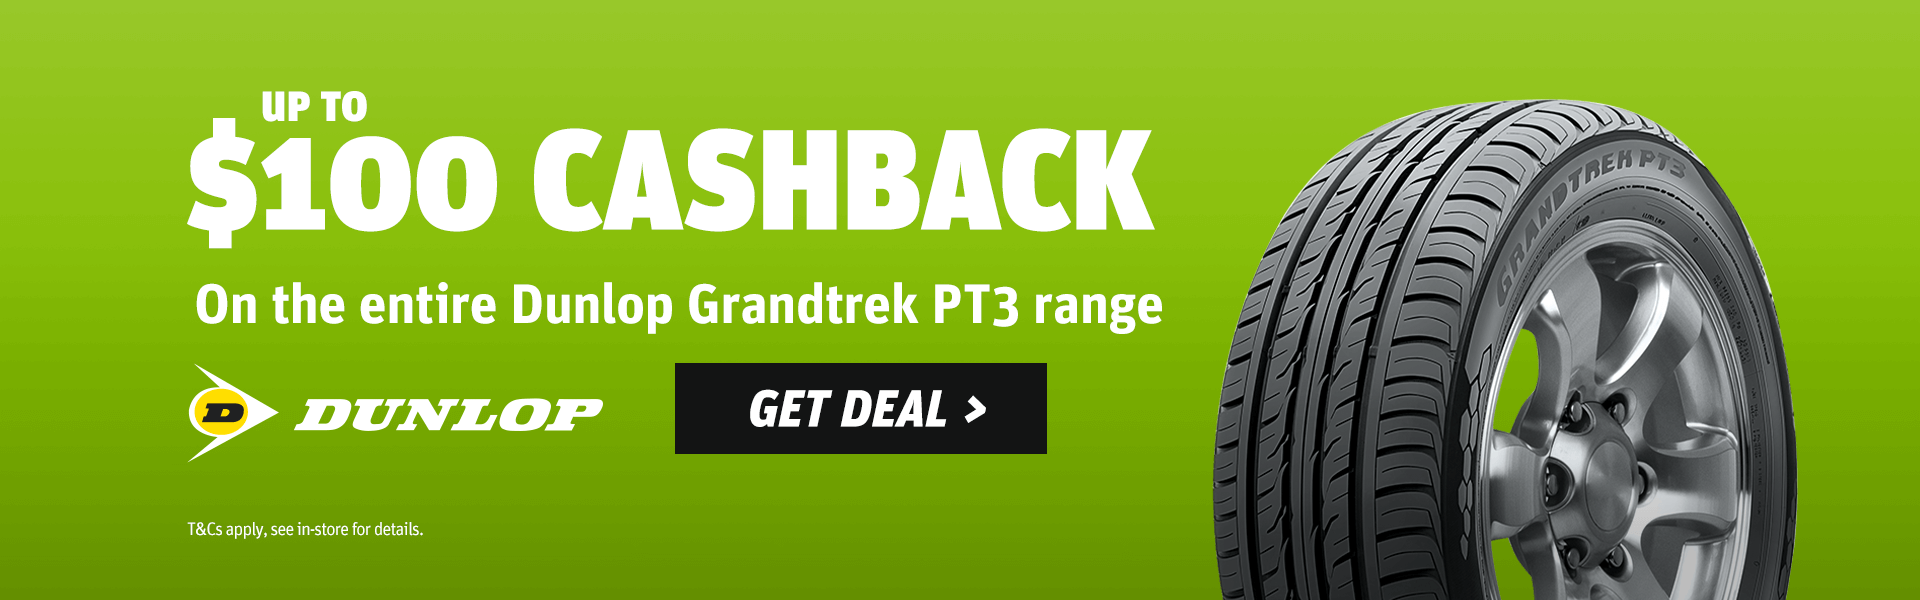 Dunlop Grandtrek PT3 Up To $100 Cashback Promotion